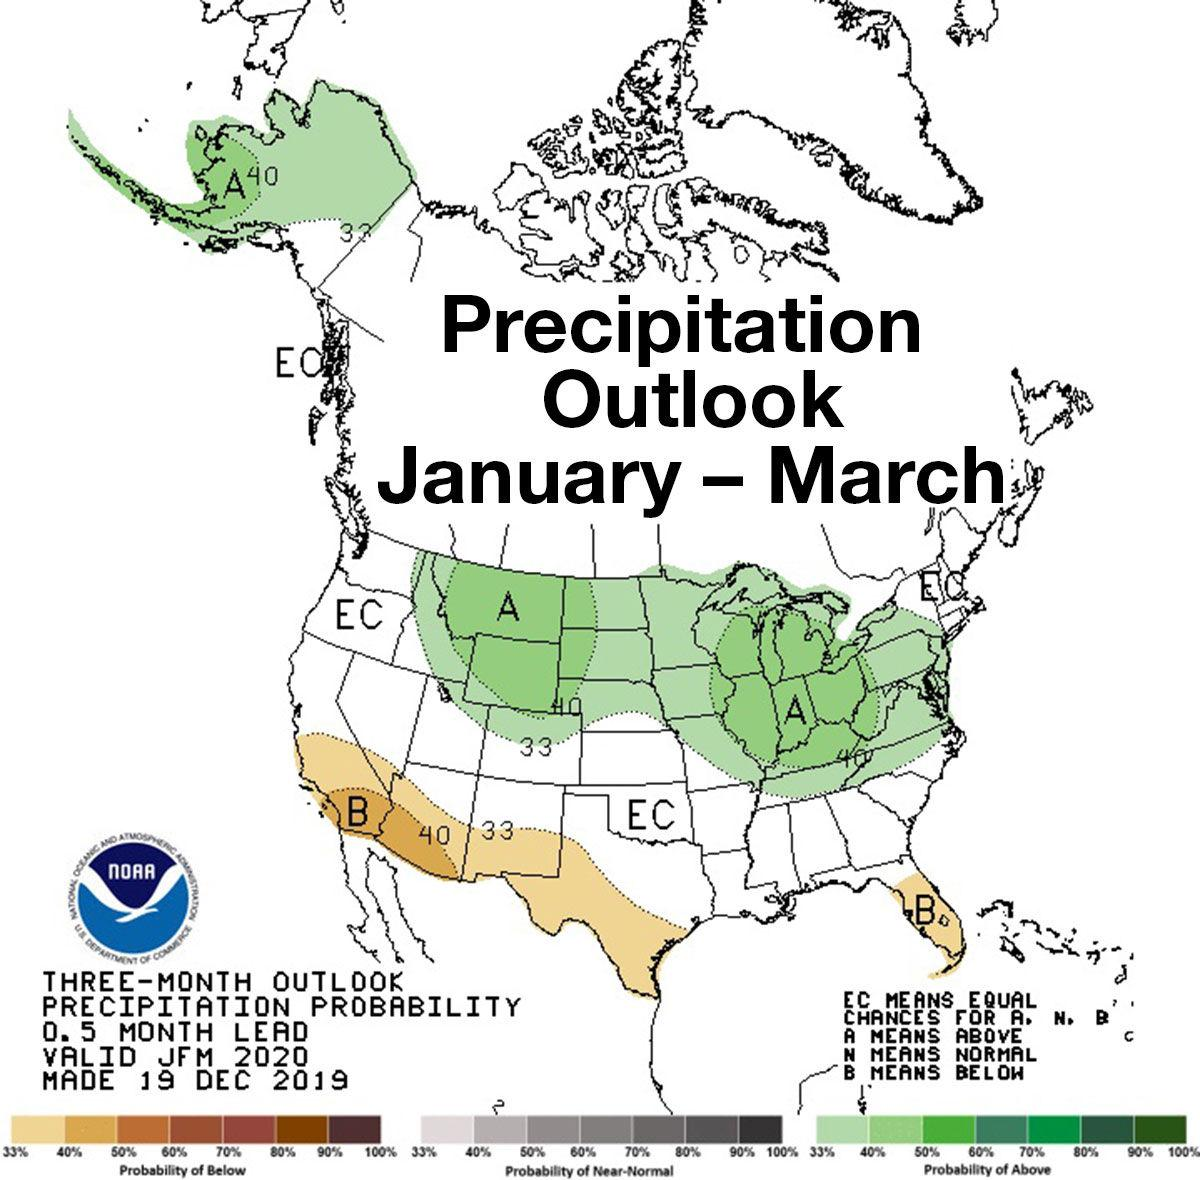 Precip outlook 2020